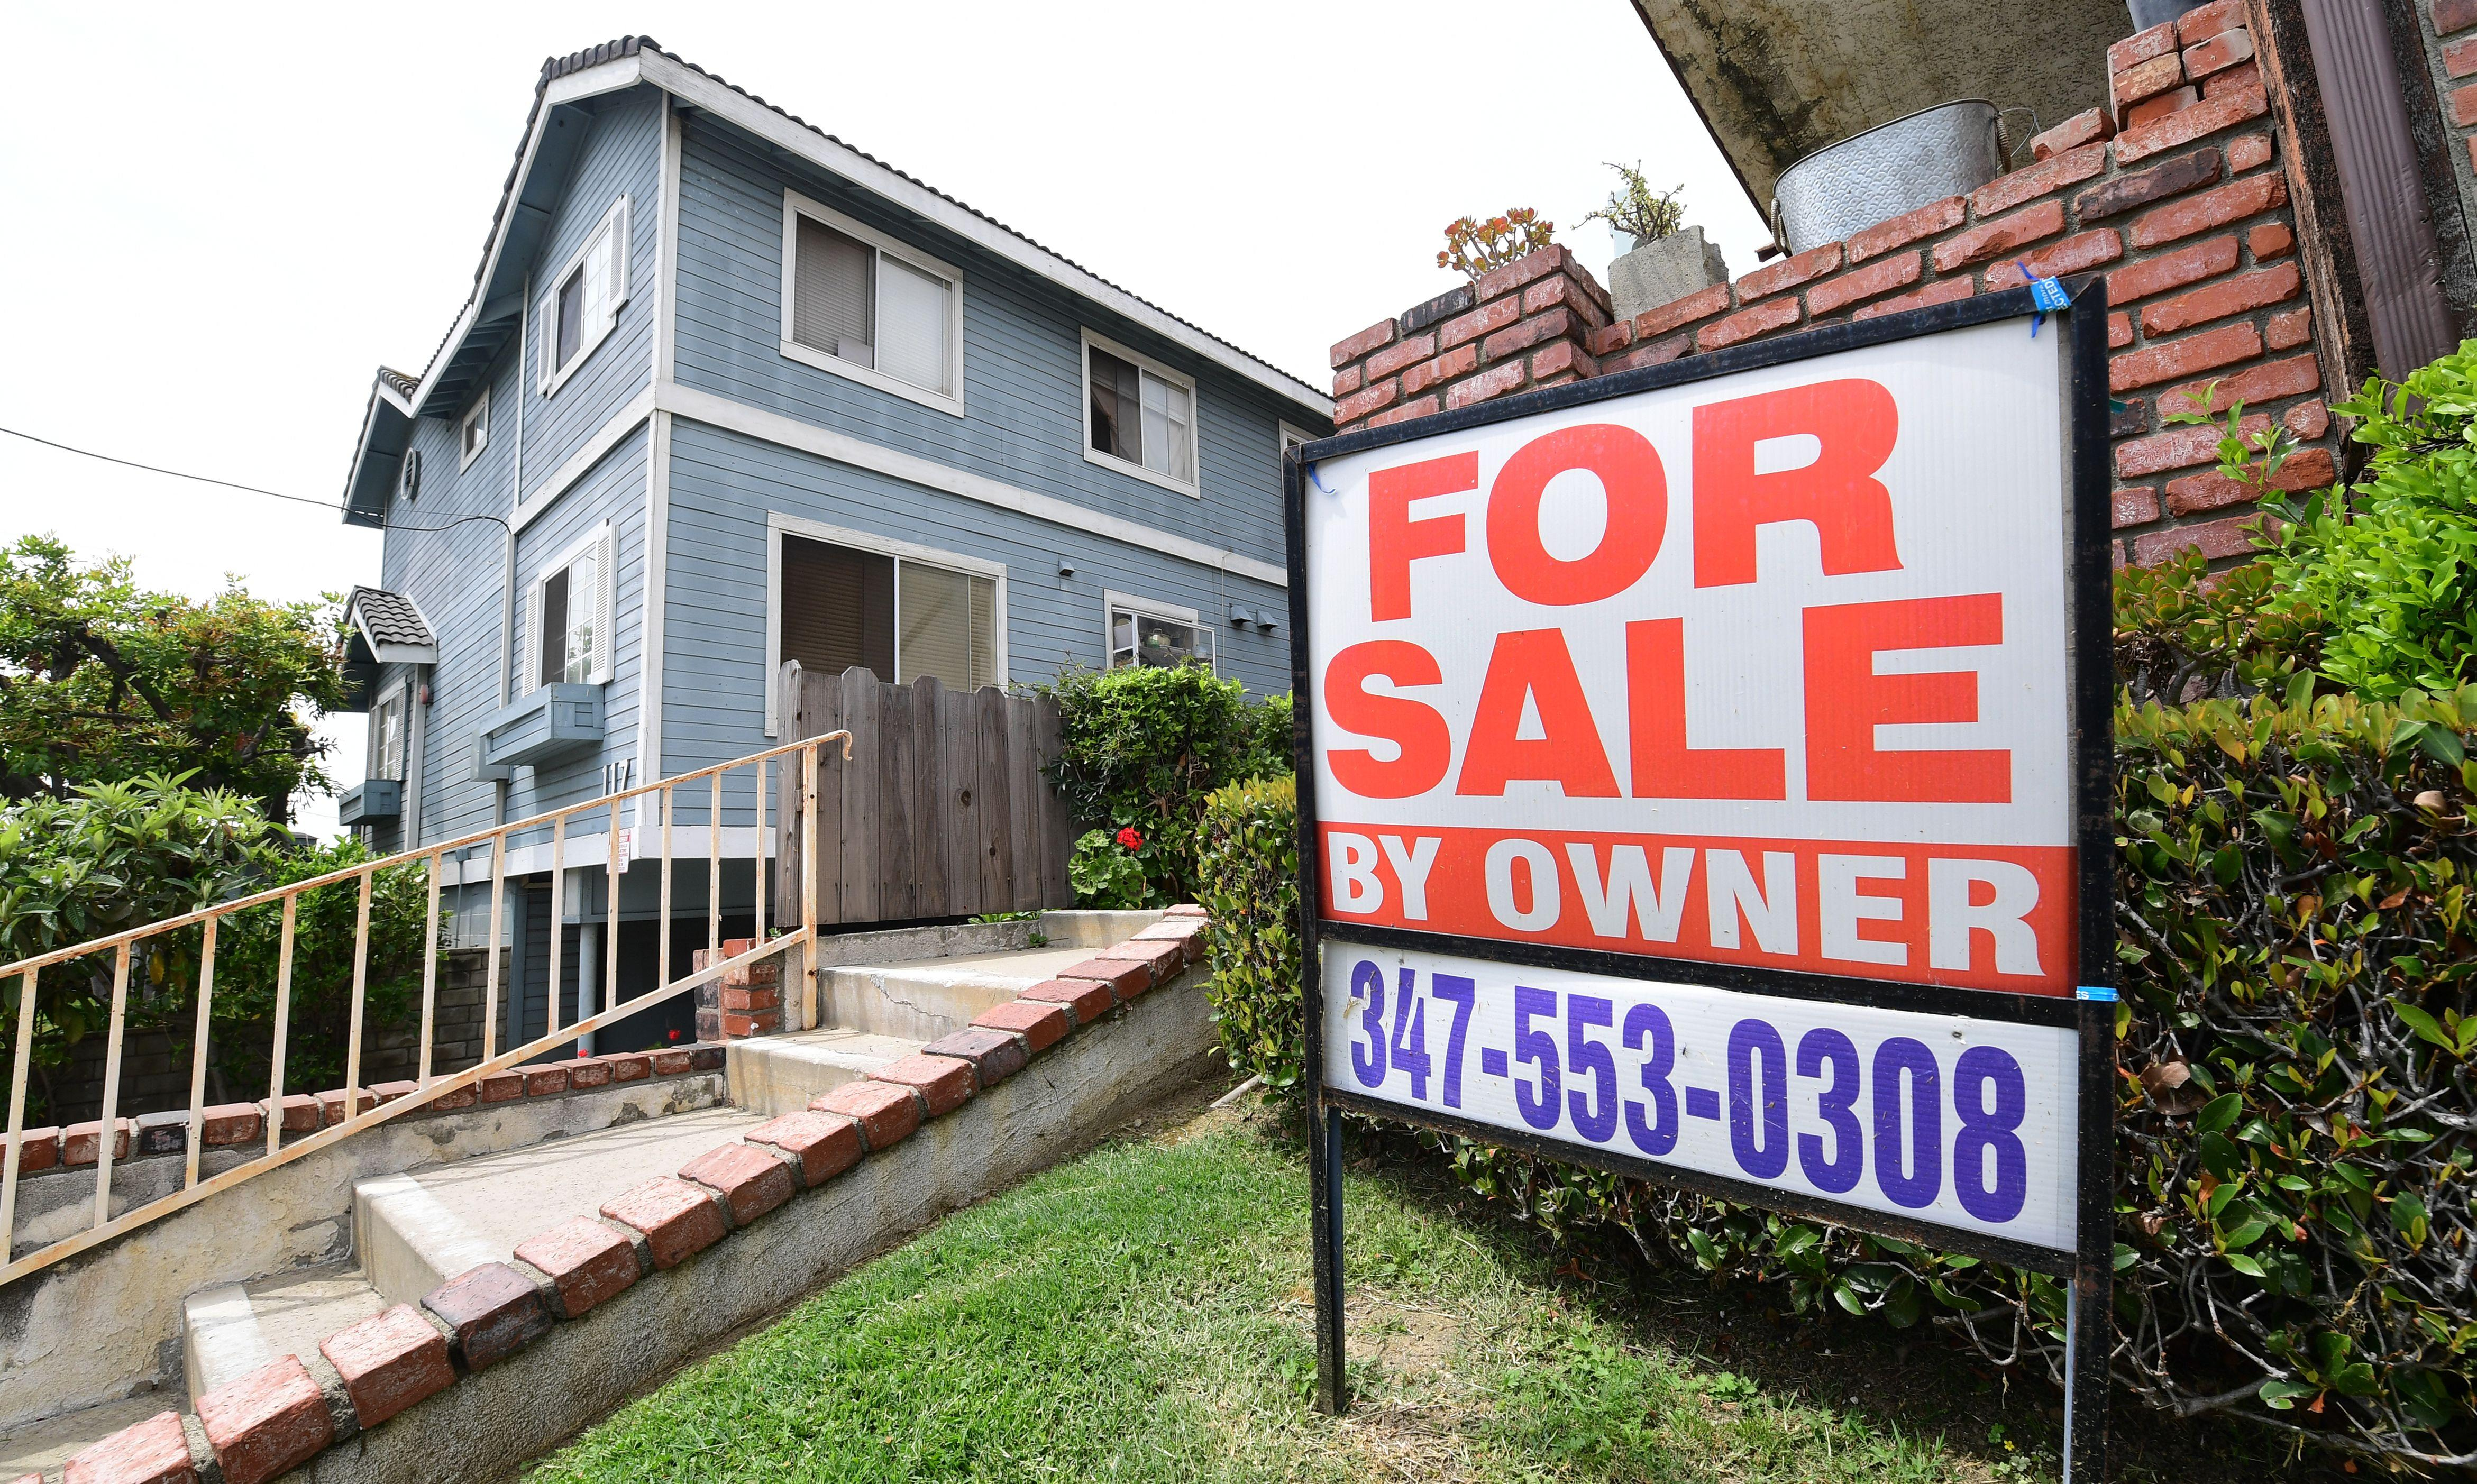 US home price growth picked up in March despite COVID-19